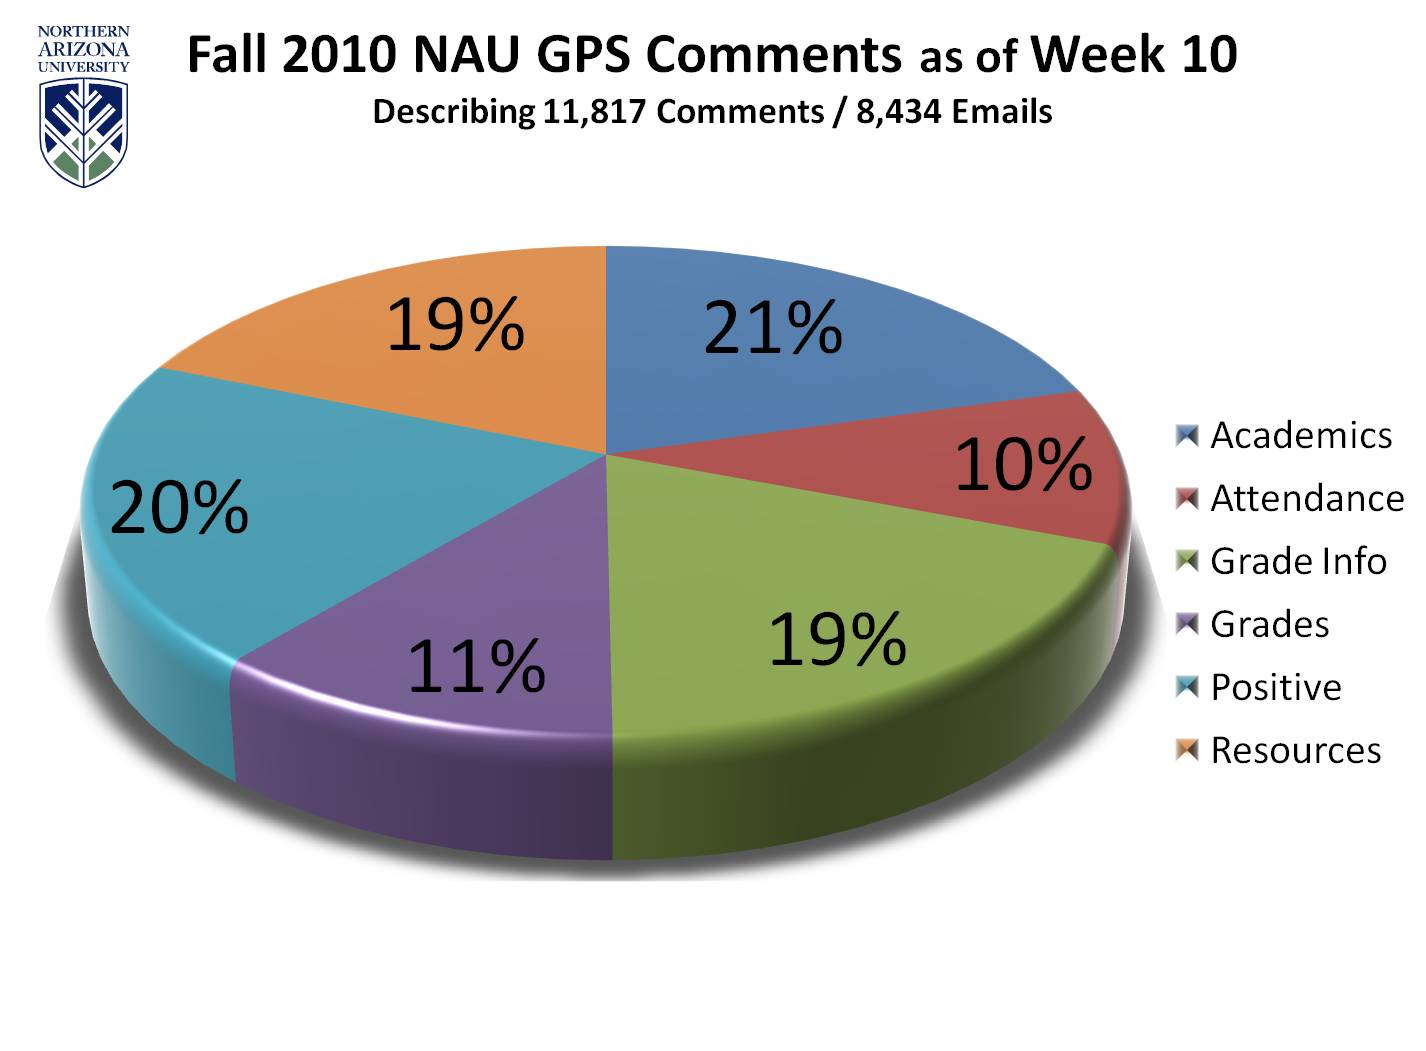 Image is a pie chart Title is Fall 2010 NAU GPS Comments as of Week 10 Subtitle is Describing 11,817 Comments in 8,434 Emails The breakdown of comment types and percentages are: Acadmics- 21% Attendance- 10% Grade Info- 19% Grades- 11% Positive Feedback- 20% Resources- 19%